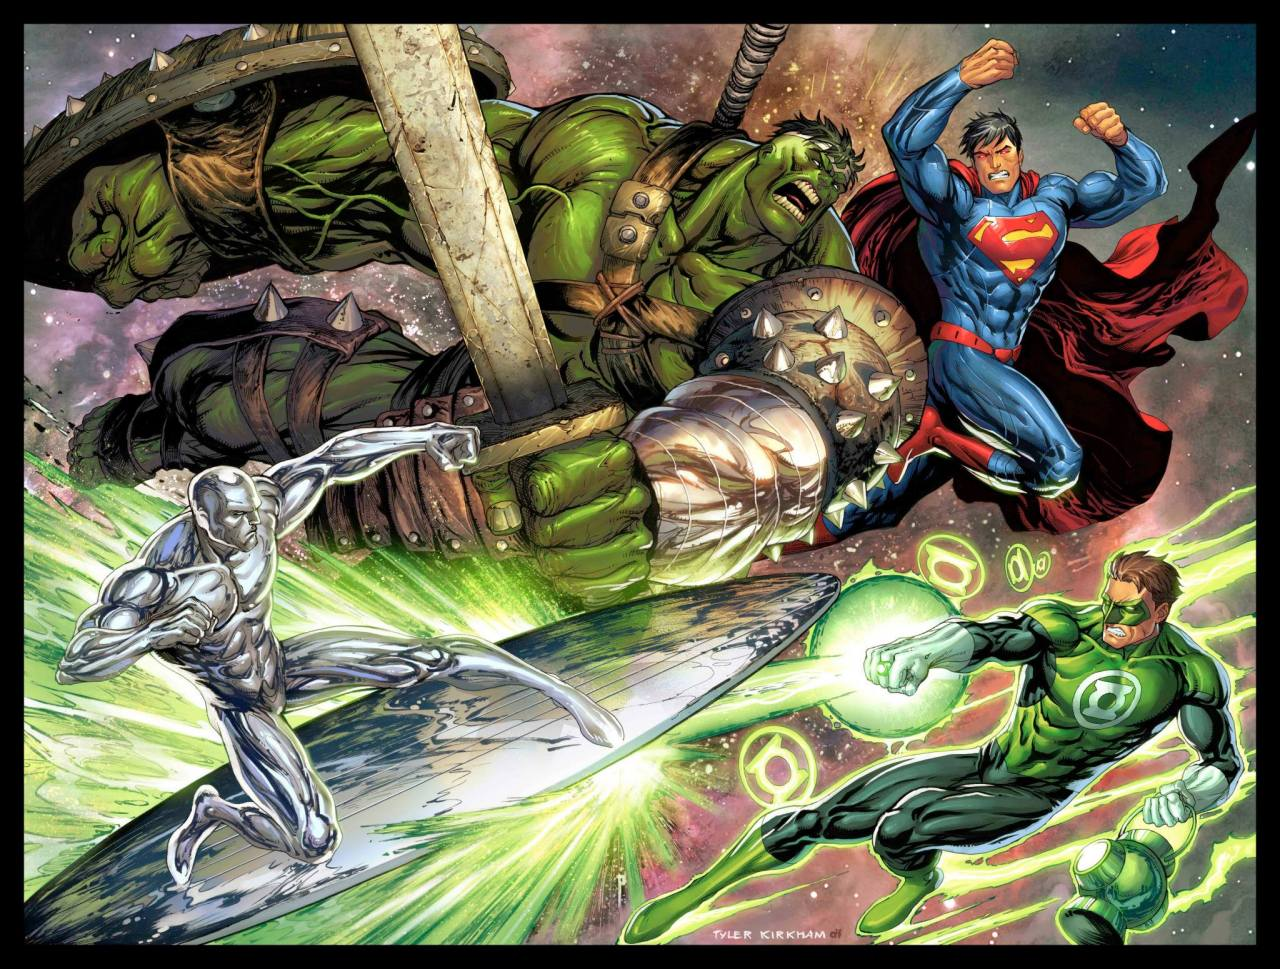 Ungoliantschilde — bear1na: Superman vs. Planet Hulk and ...